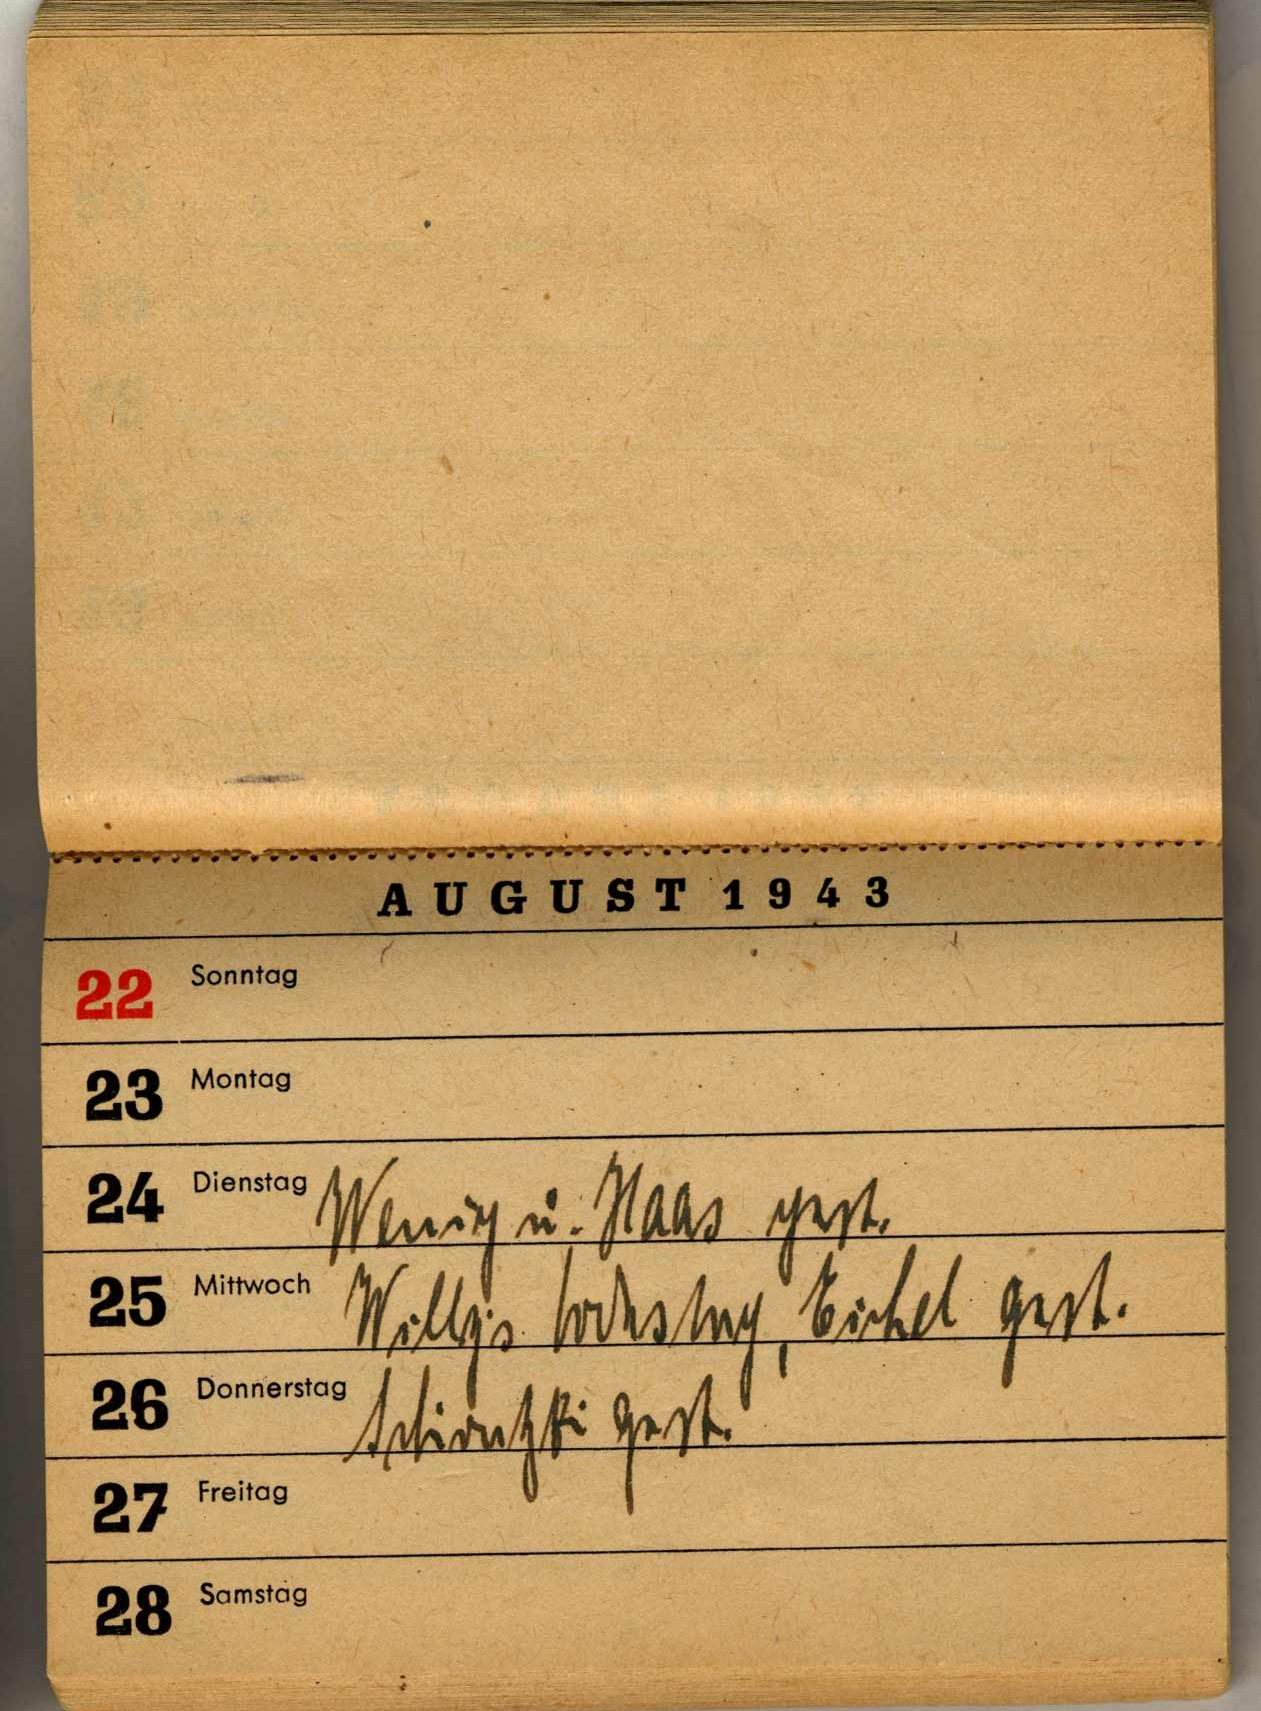 Calendar of the year 1943 in which Paula noted each day she received news from Willy.